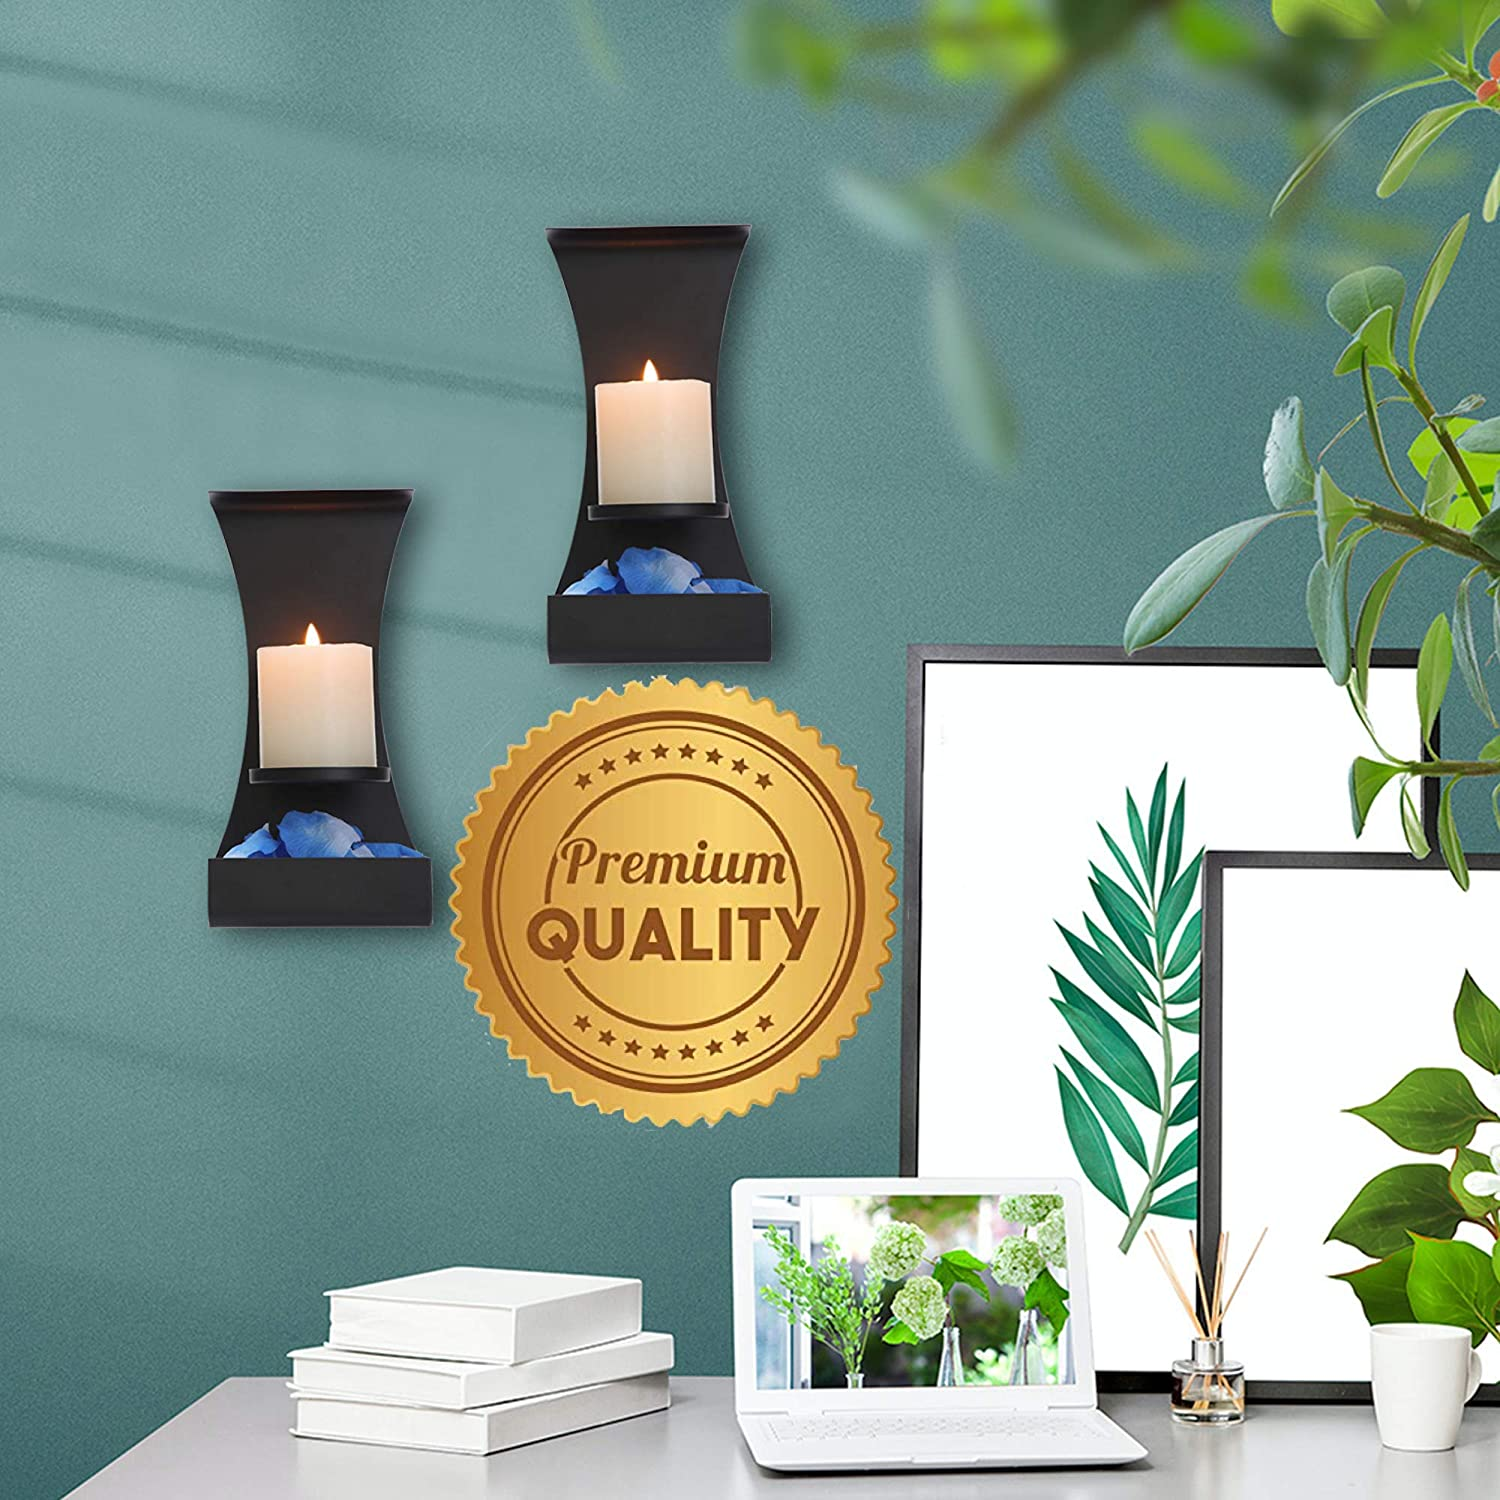 Metal Wall Candle Sconces Wall Decor Set of 2 Wall Candle Holders Decorative Set of 2 Metal Wall Decorations For Living Room Lumera Lights Black Metal Wall Sconces Set of Two Candle Holders